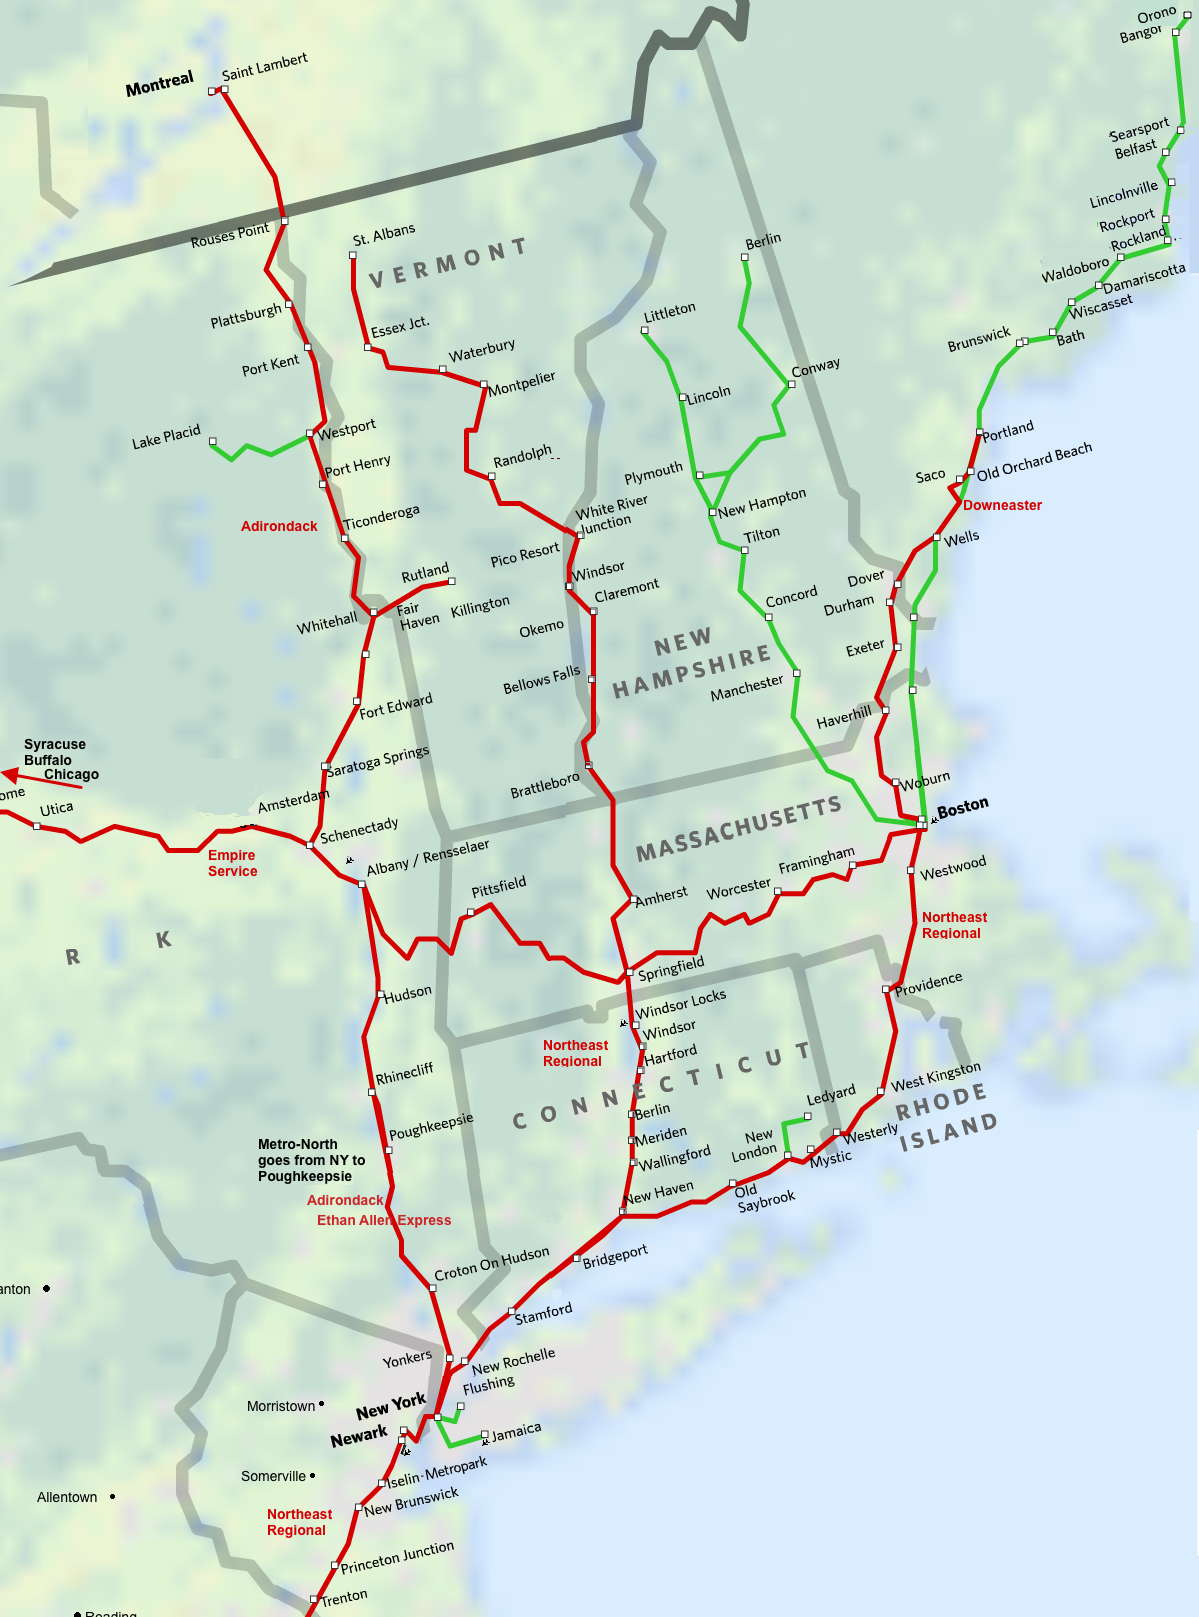 North East - New England Amtrak Route Map on